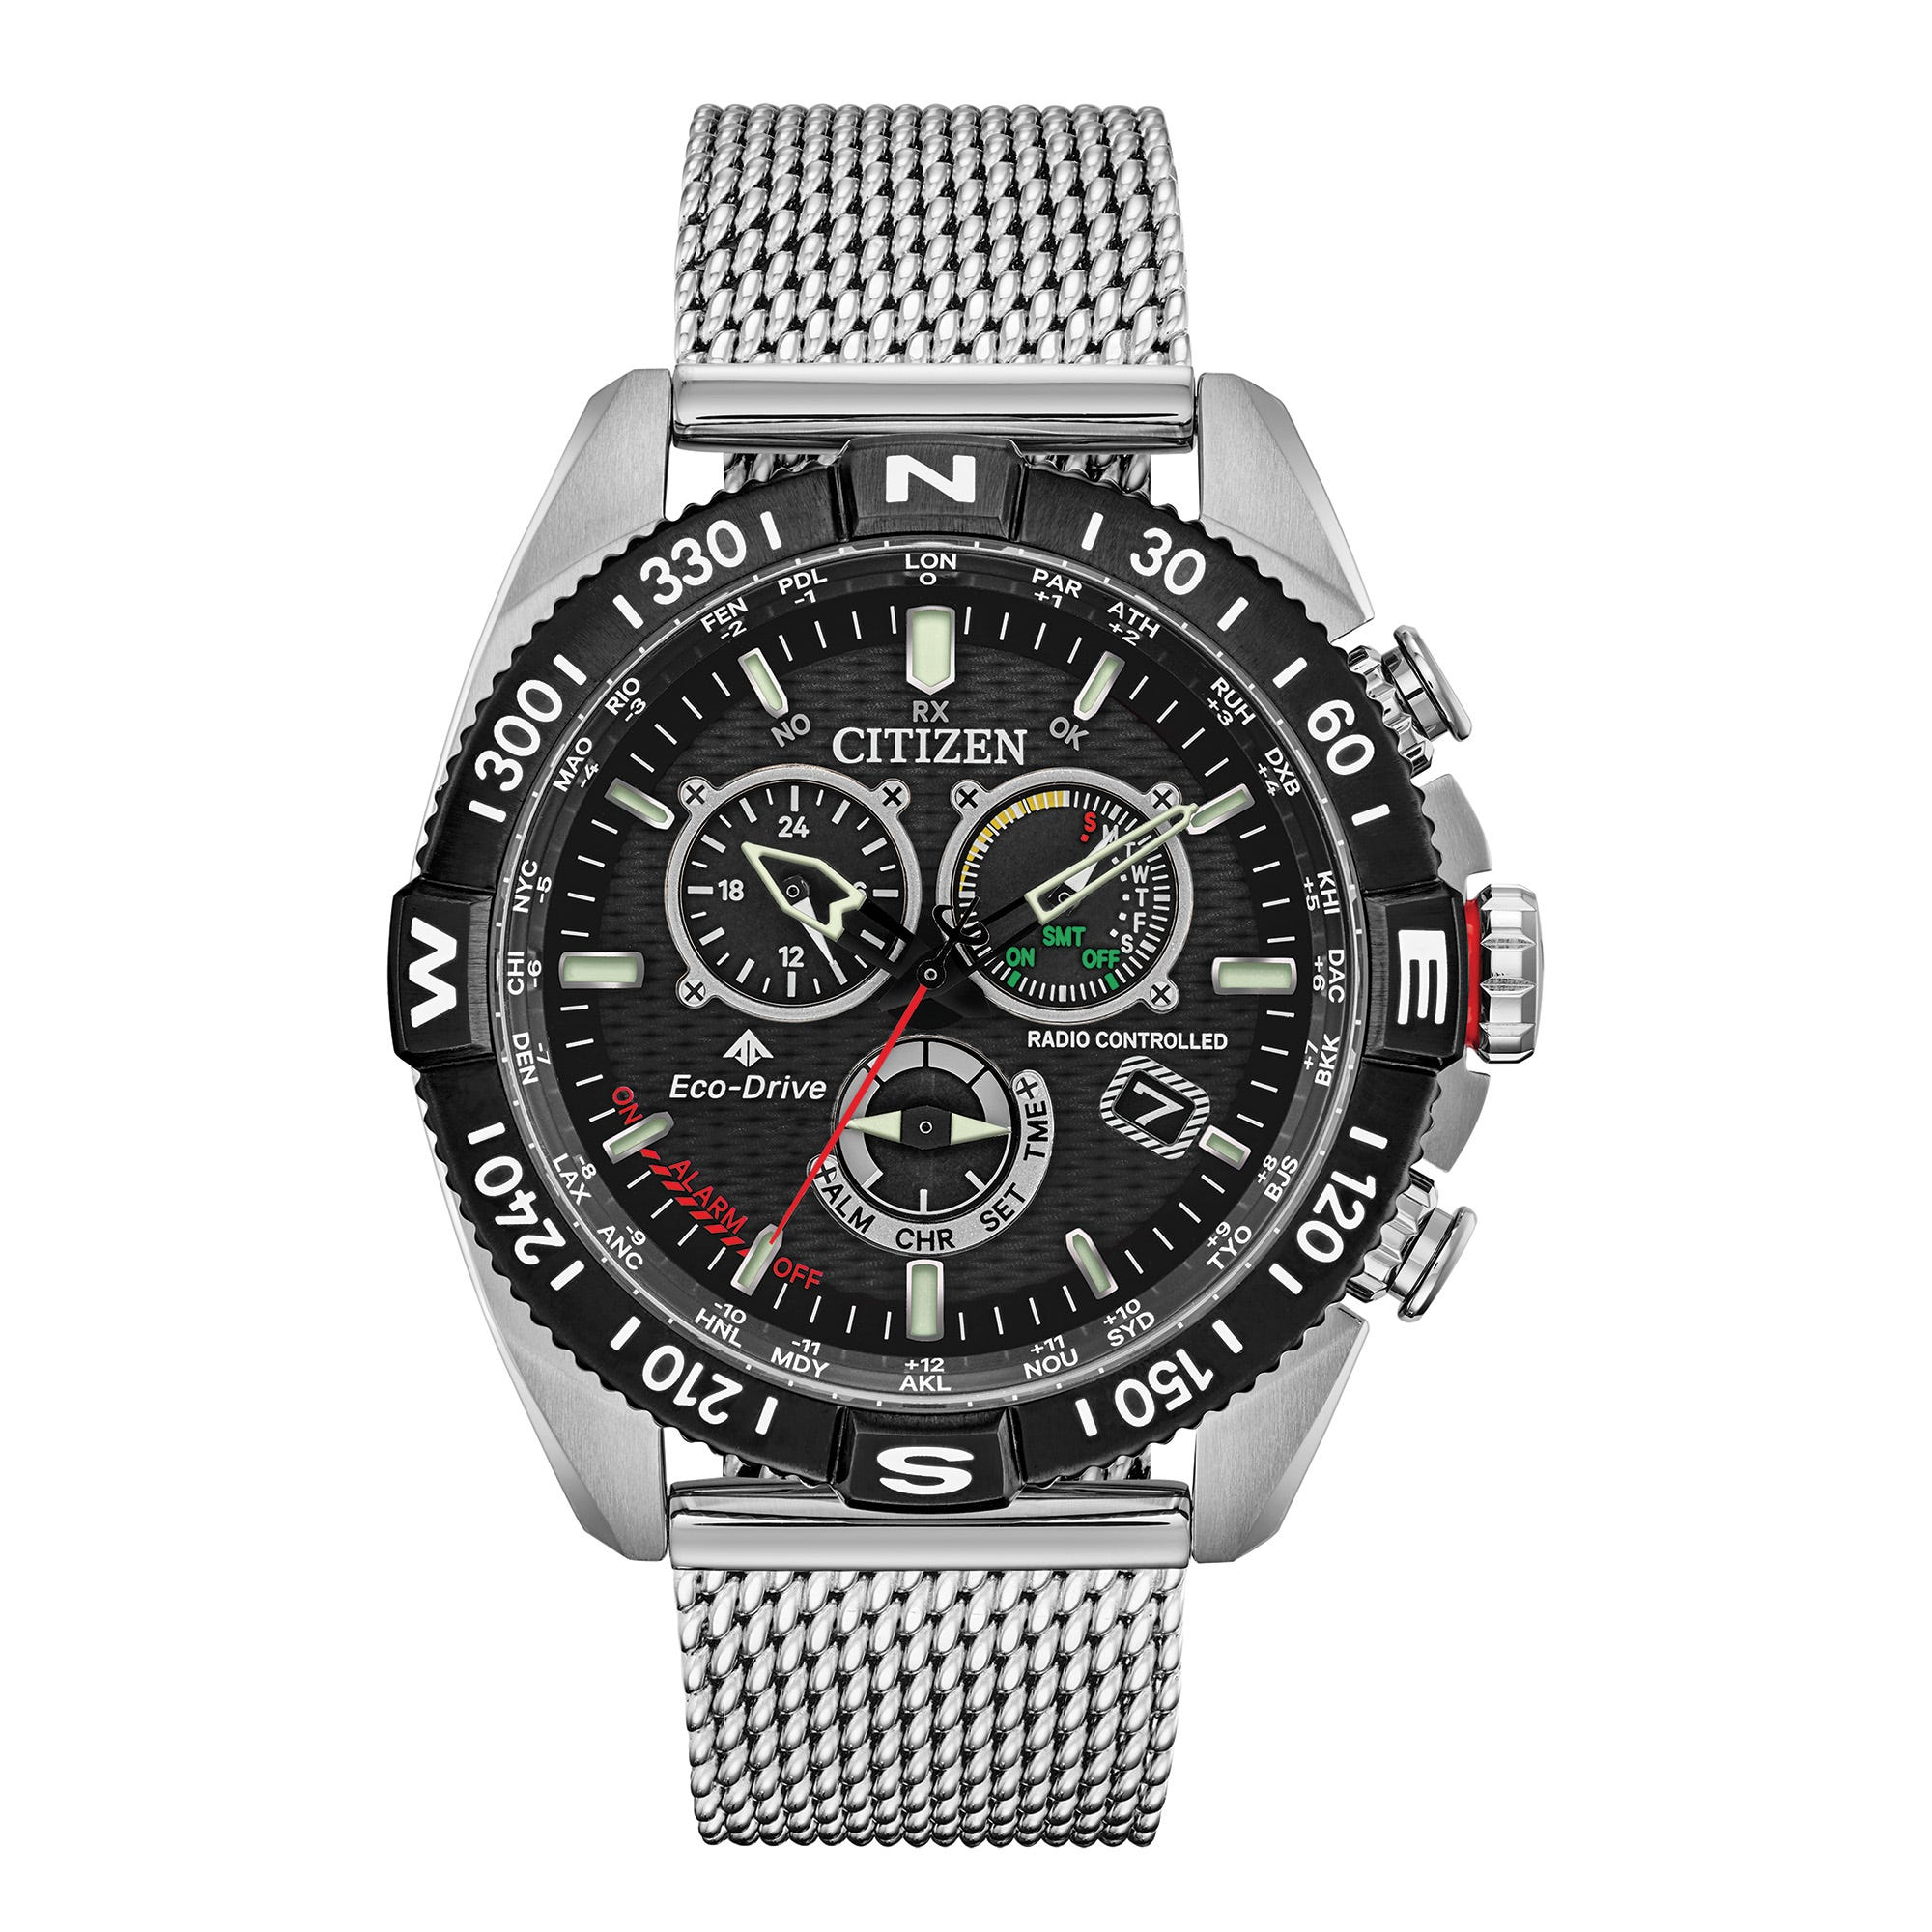 Citizen Men's Promaster Navihawk Watch CB5840-59E